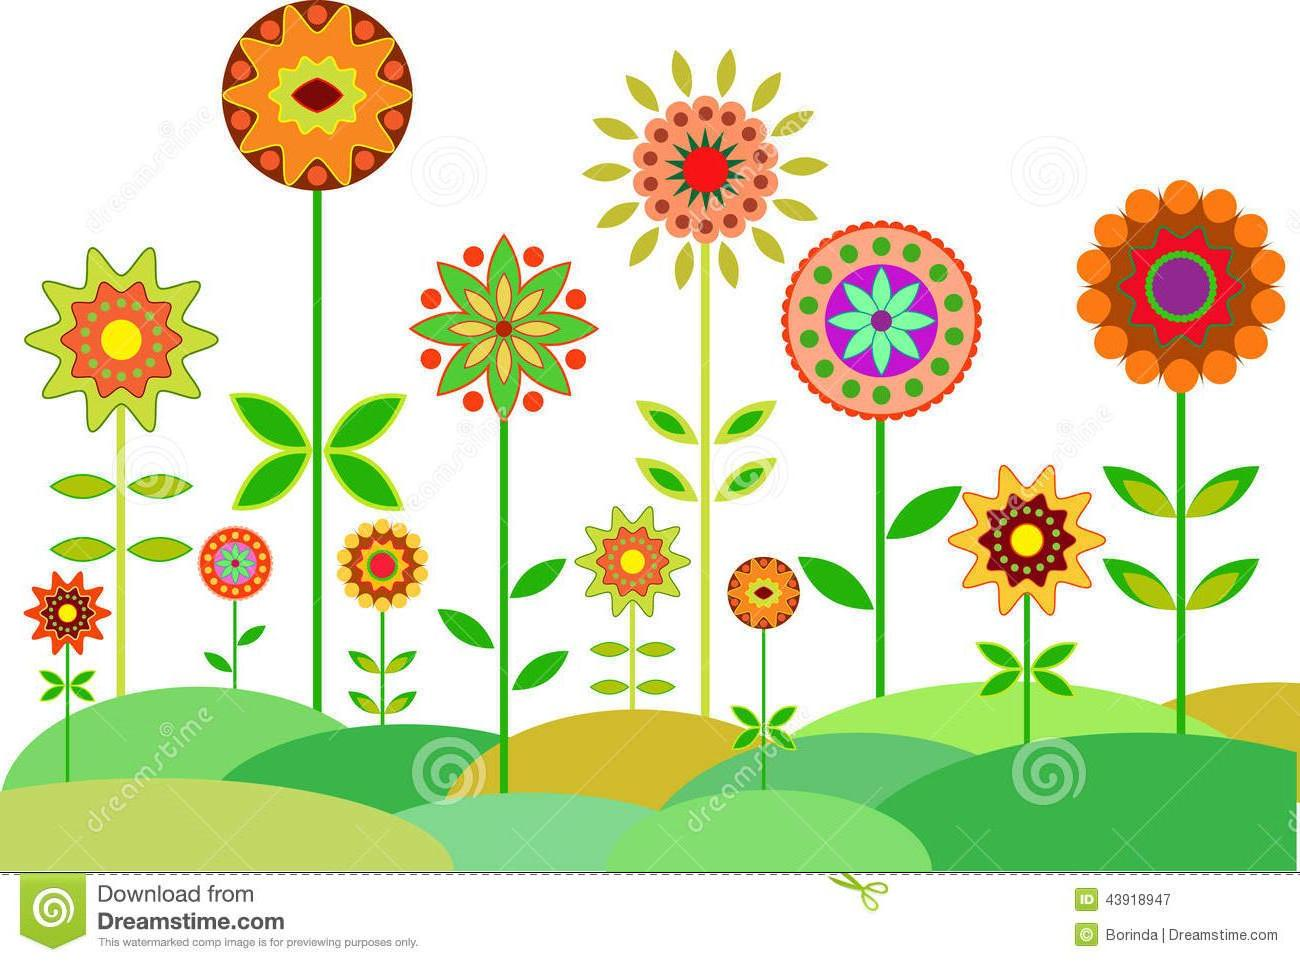 Best HD Flower Garden Clip Art Photos » Free Vector Art.